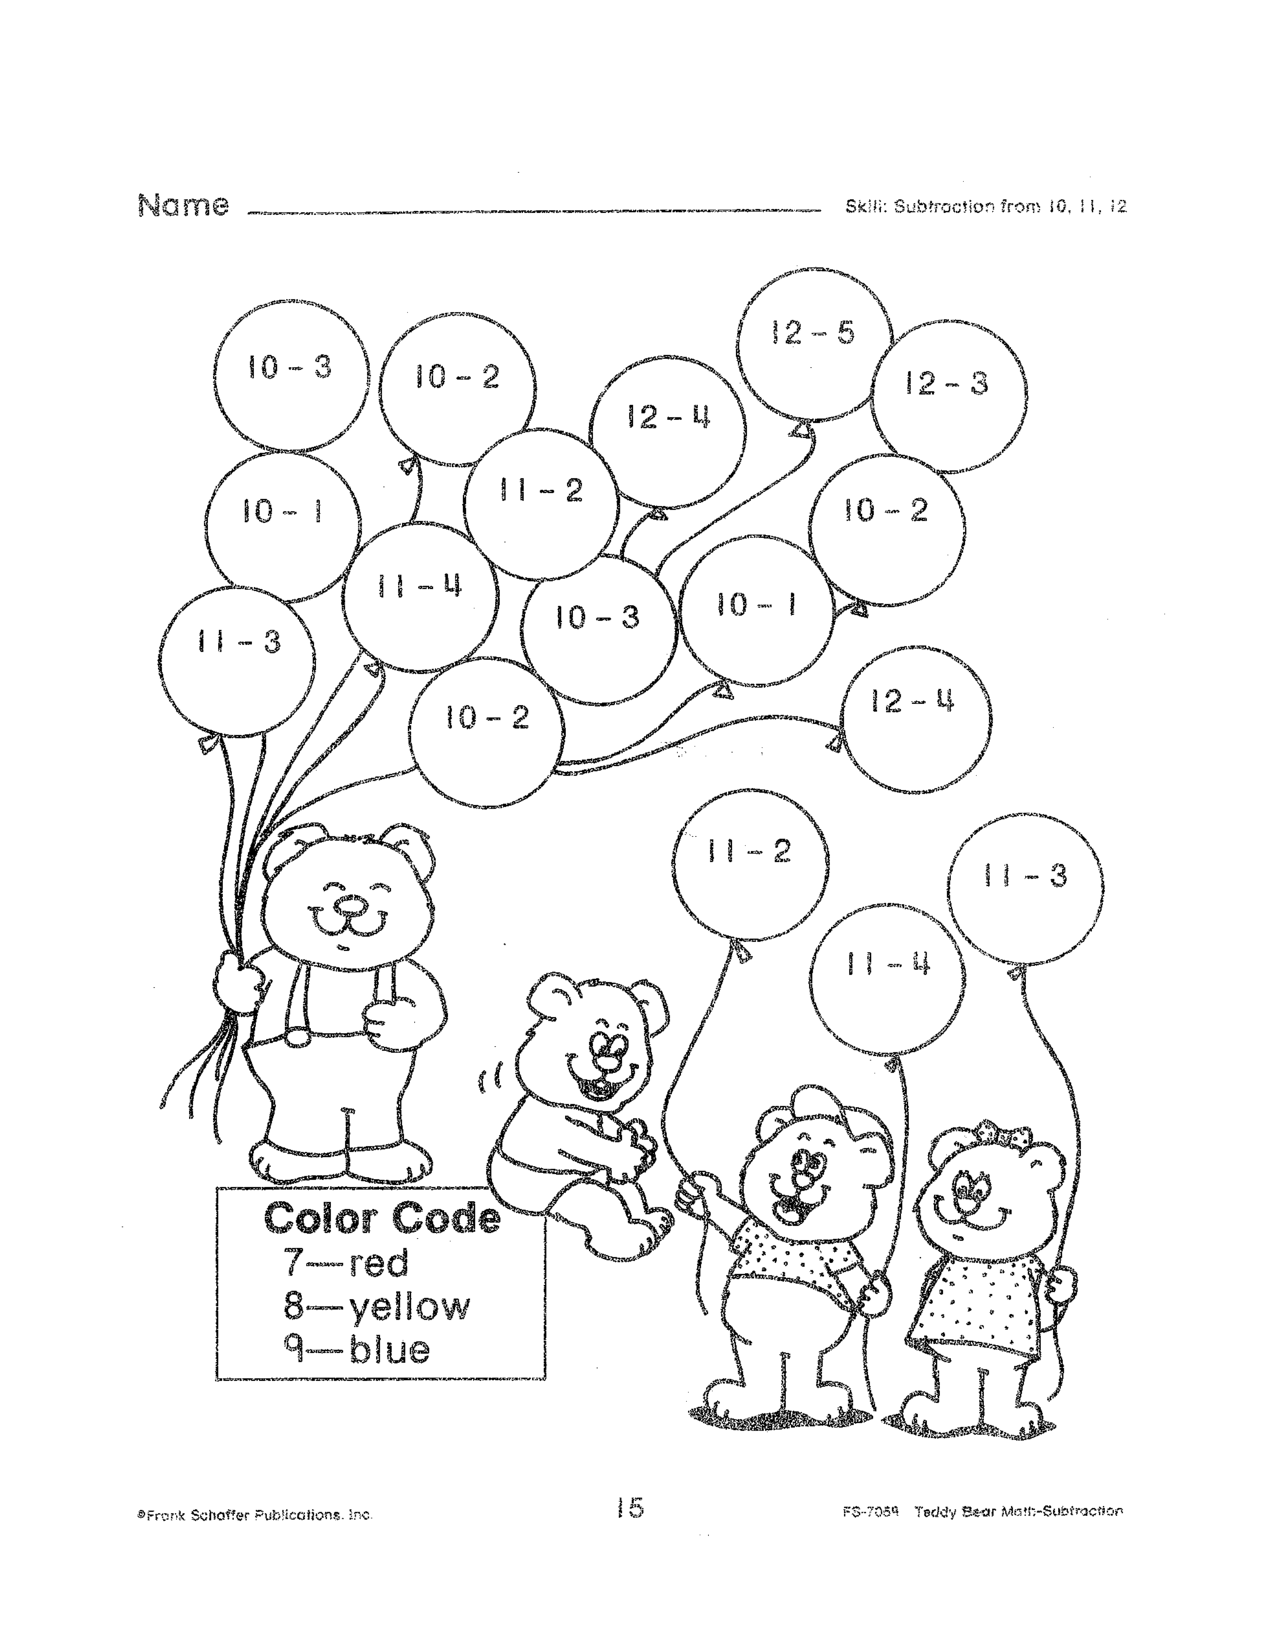 Worksheets Printable Worksheets For 2nd Graders 2nd grade subtraction 2 digit low numbers kg math review worksheetsprintable